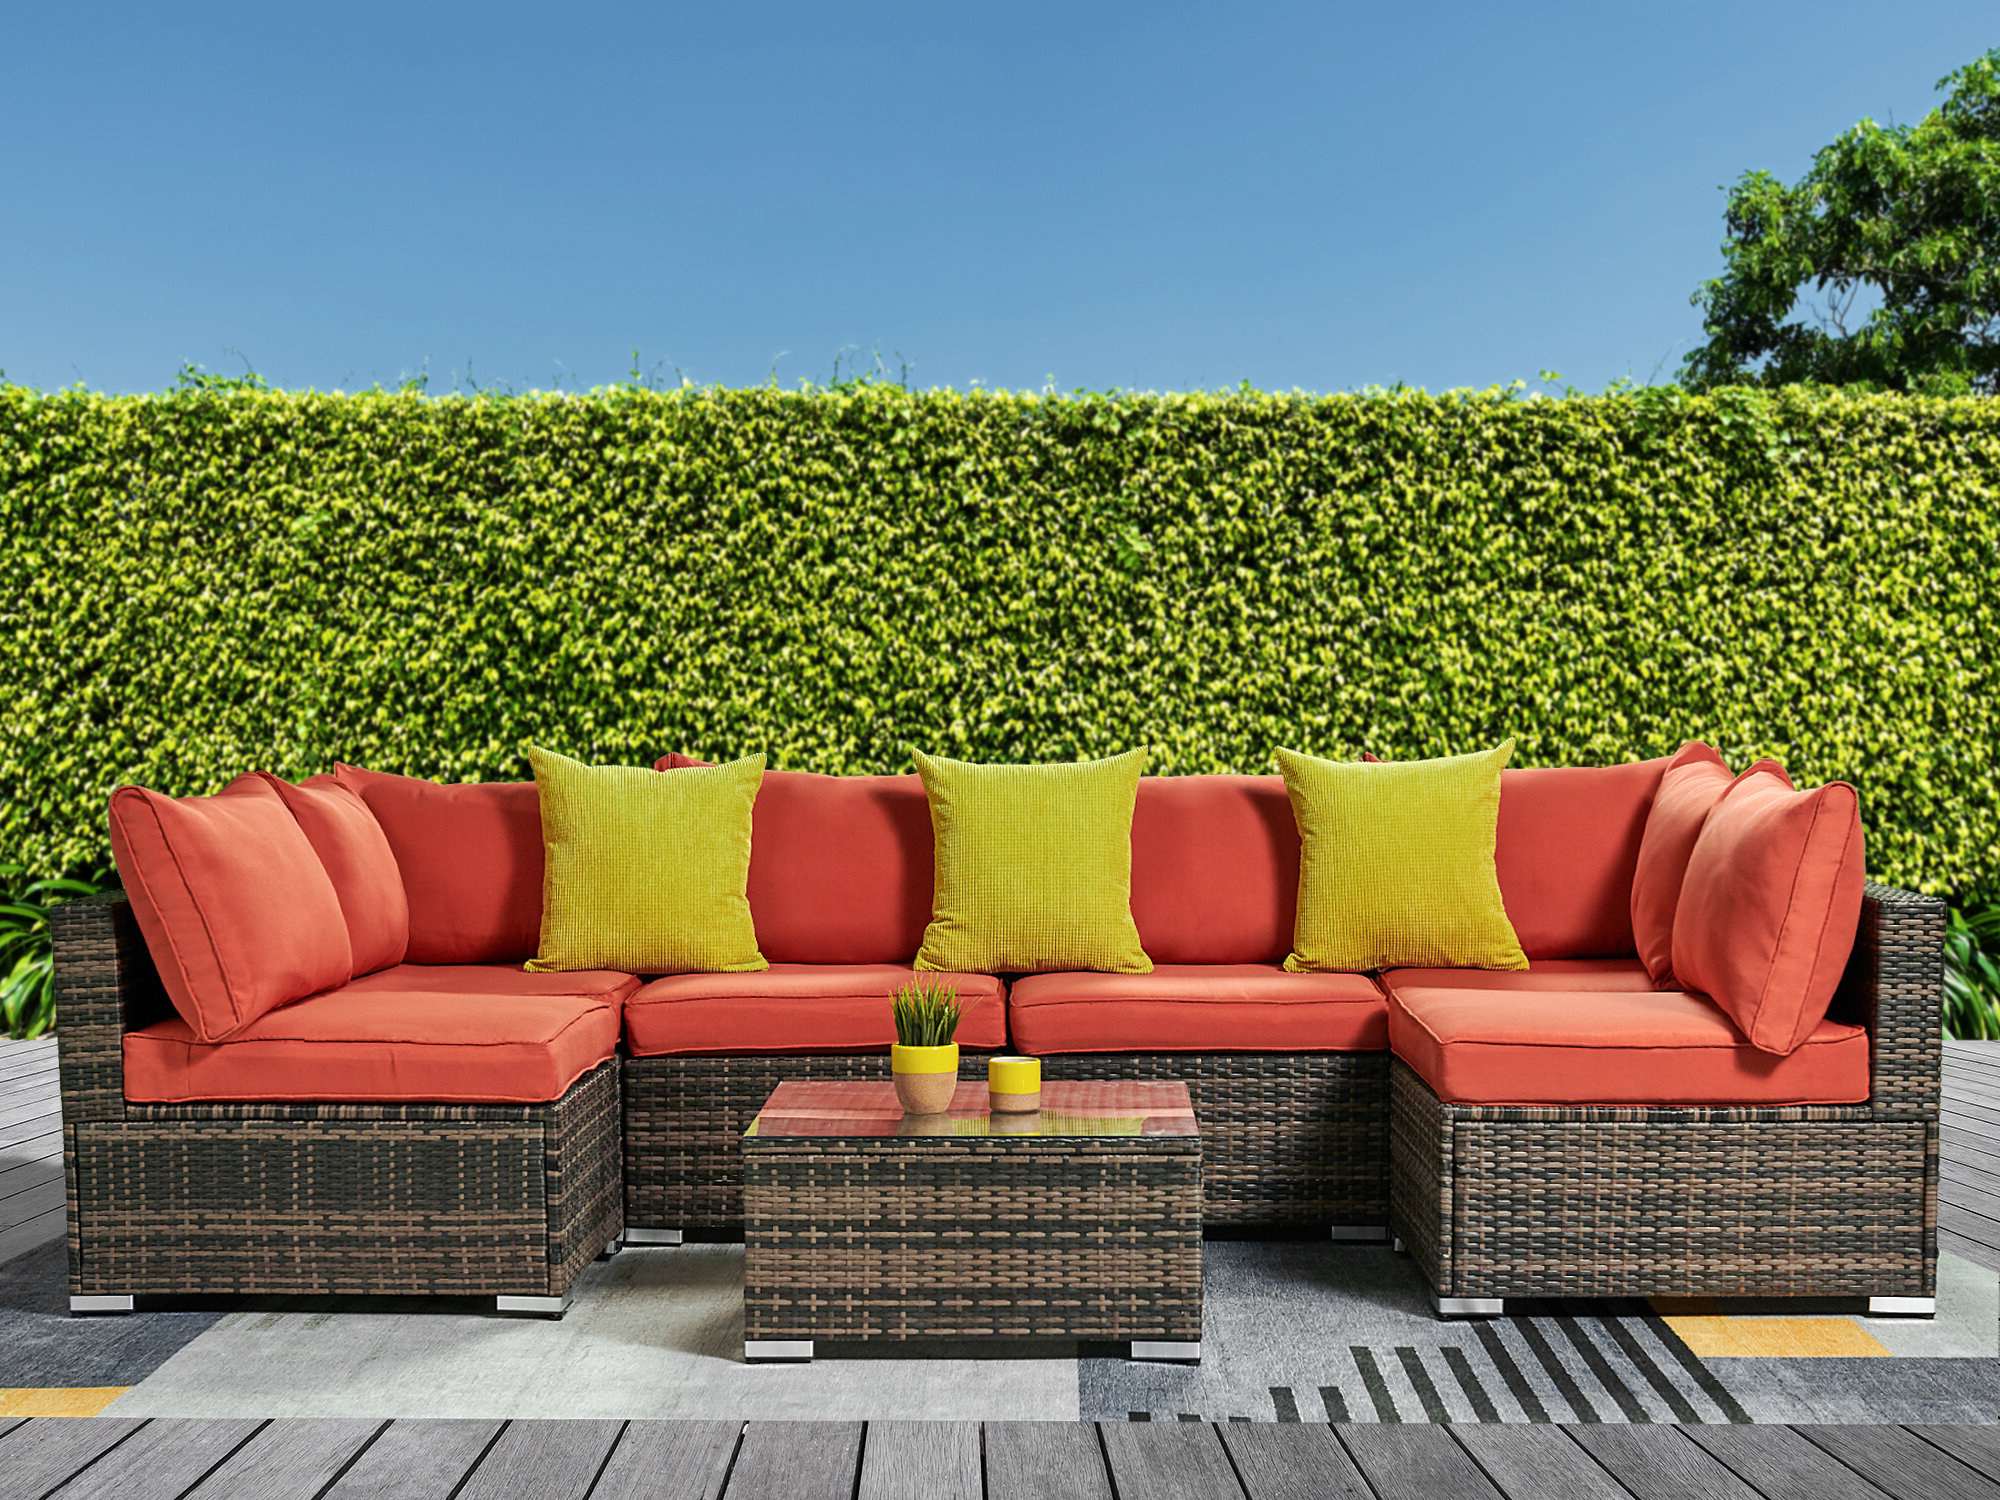 Fashionable Rowley Patio Sofas Set With Cushions With Regard To Safiya Patio Sectional With Cushions (View 4 of 20)